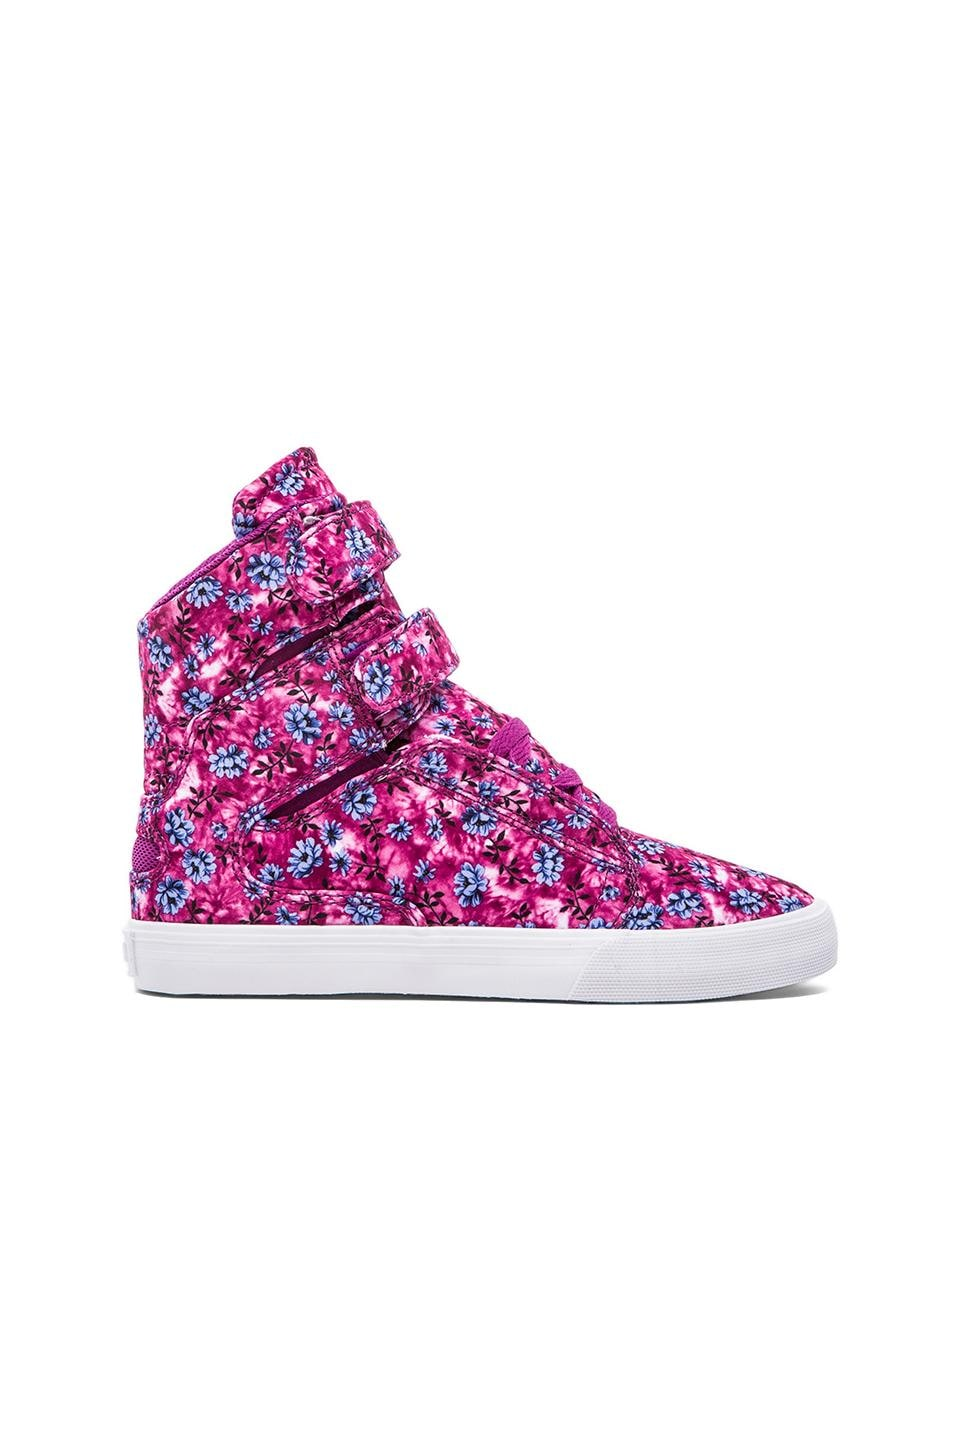 Supra Society Sneaker in Pink/Blue Orchid